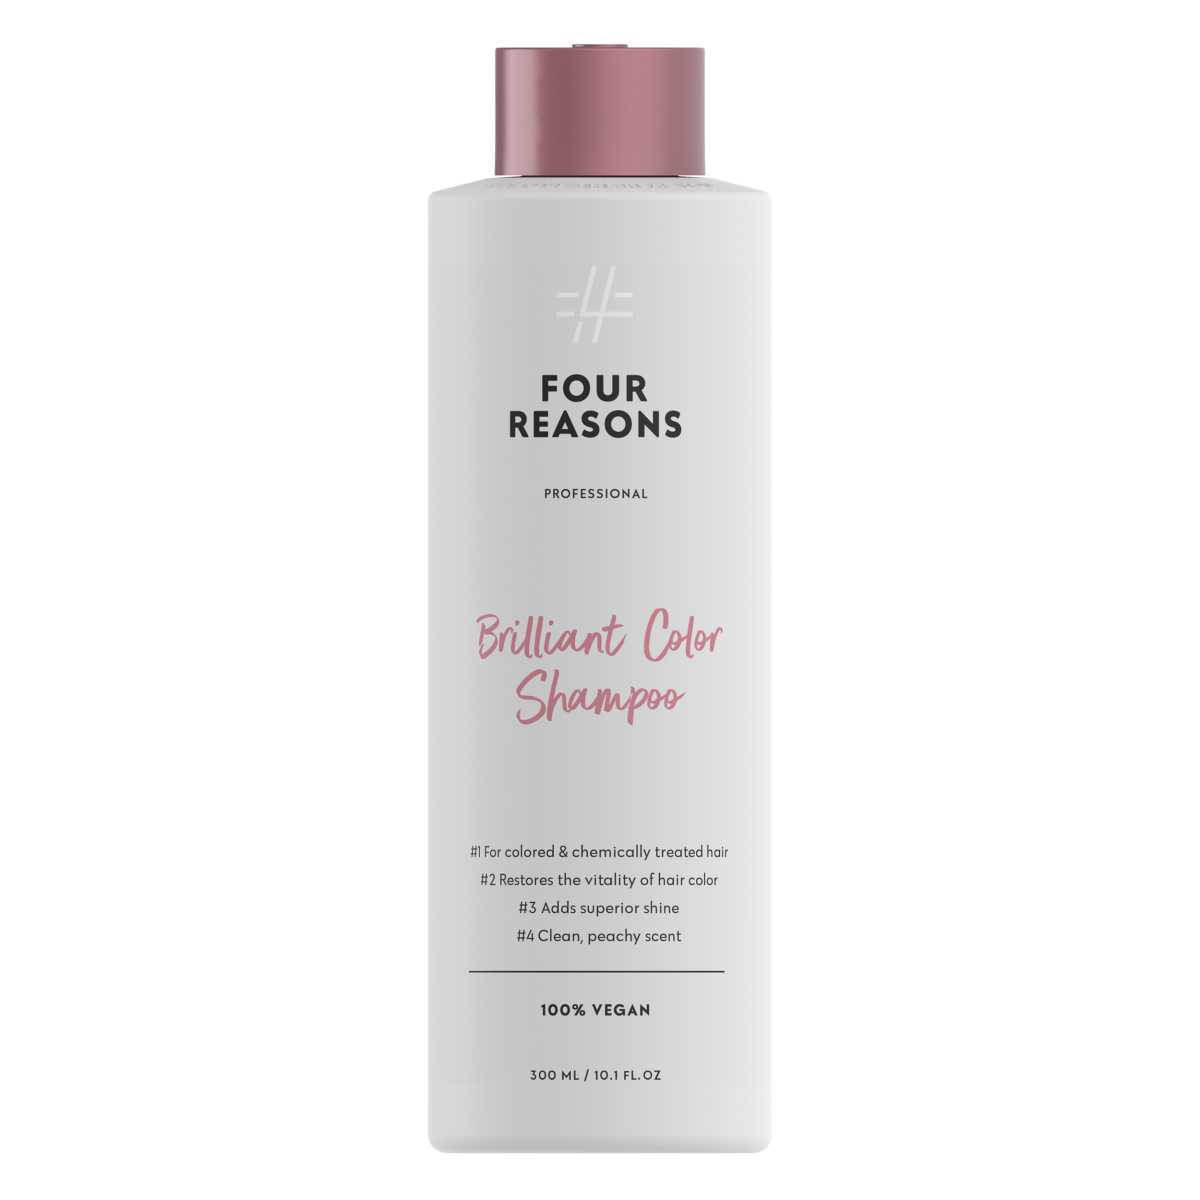 Four-Reasons-Professional-Brilliant-Color-Shampoo